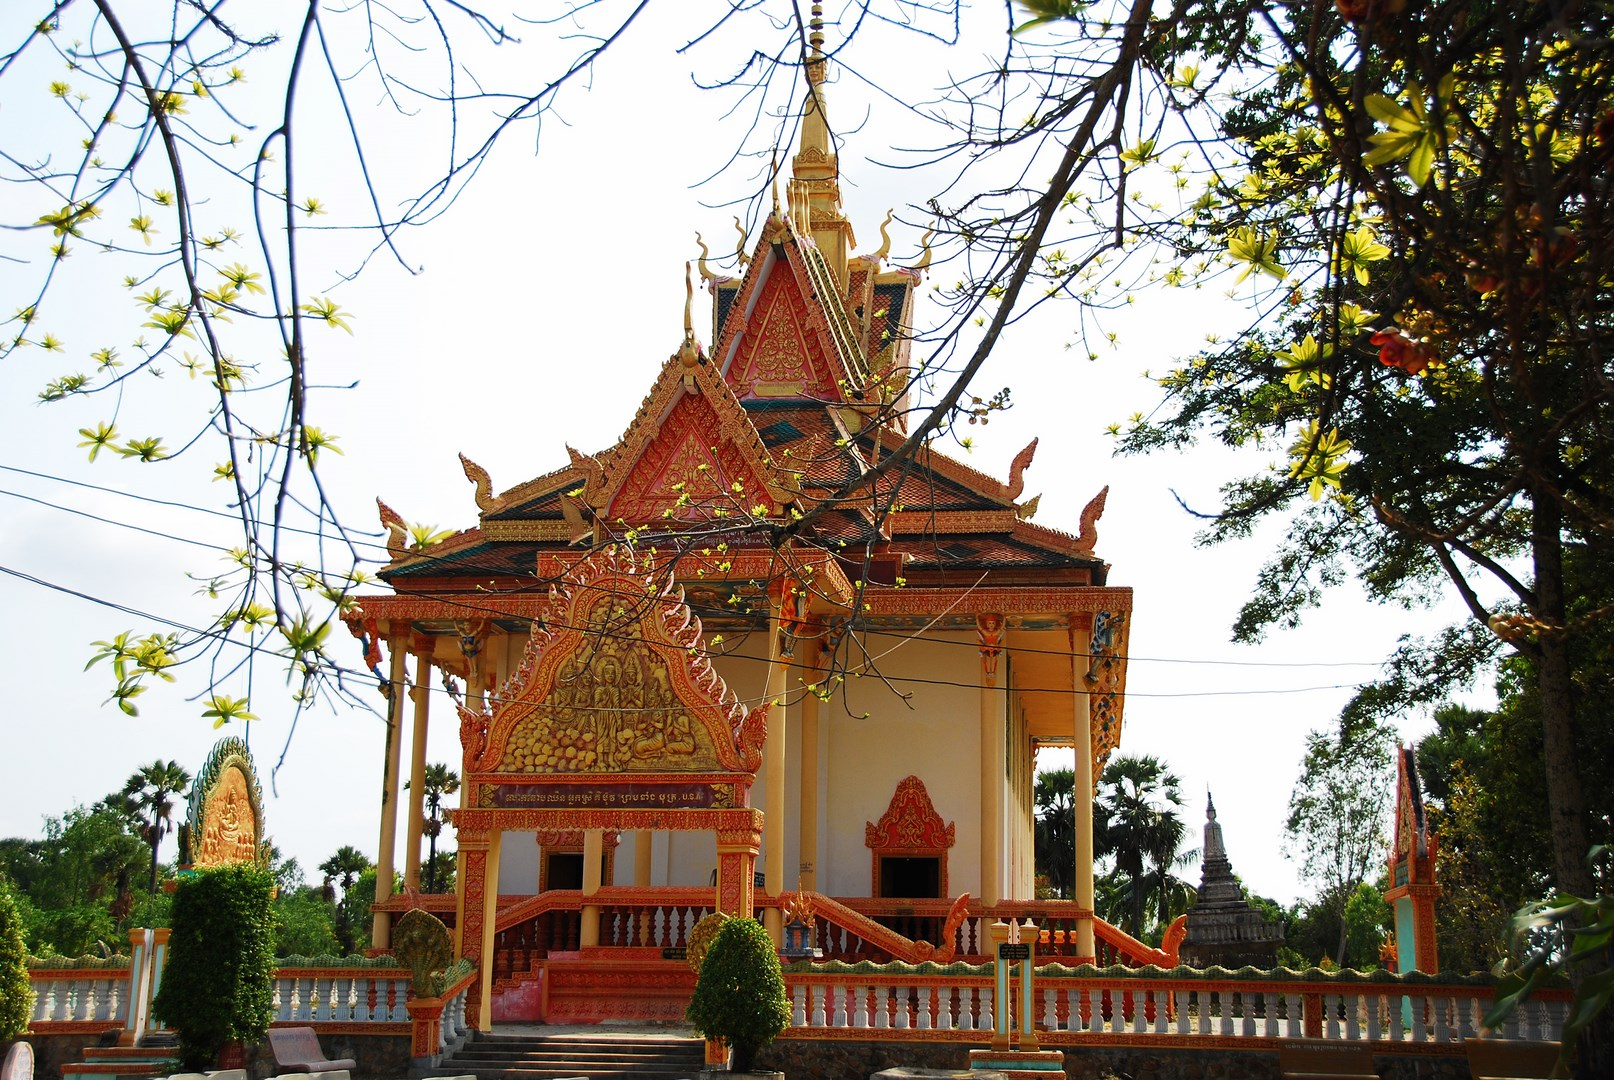 holly_kampot_pagoda-Copy.jpg